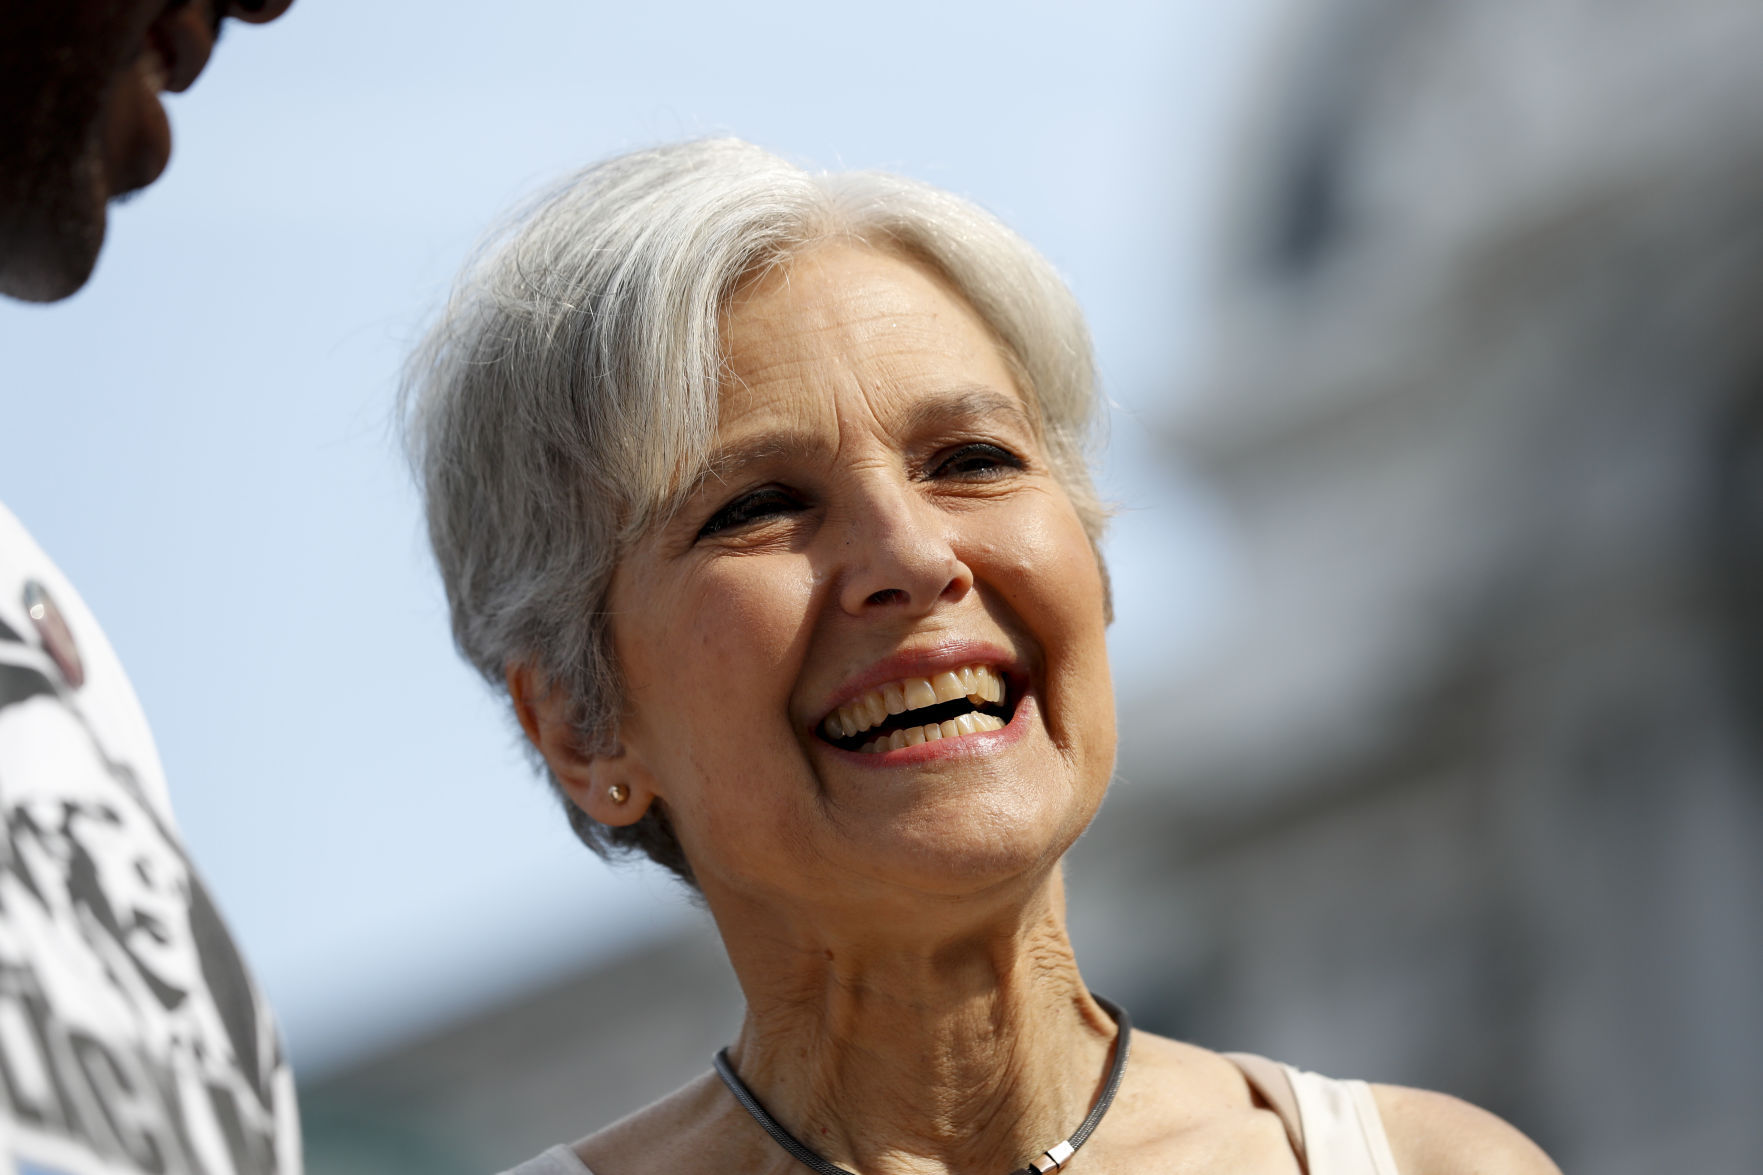 Jill Stein raises funds for statewide recount